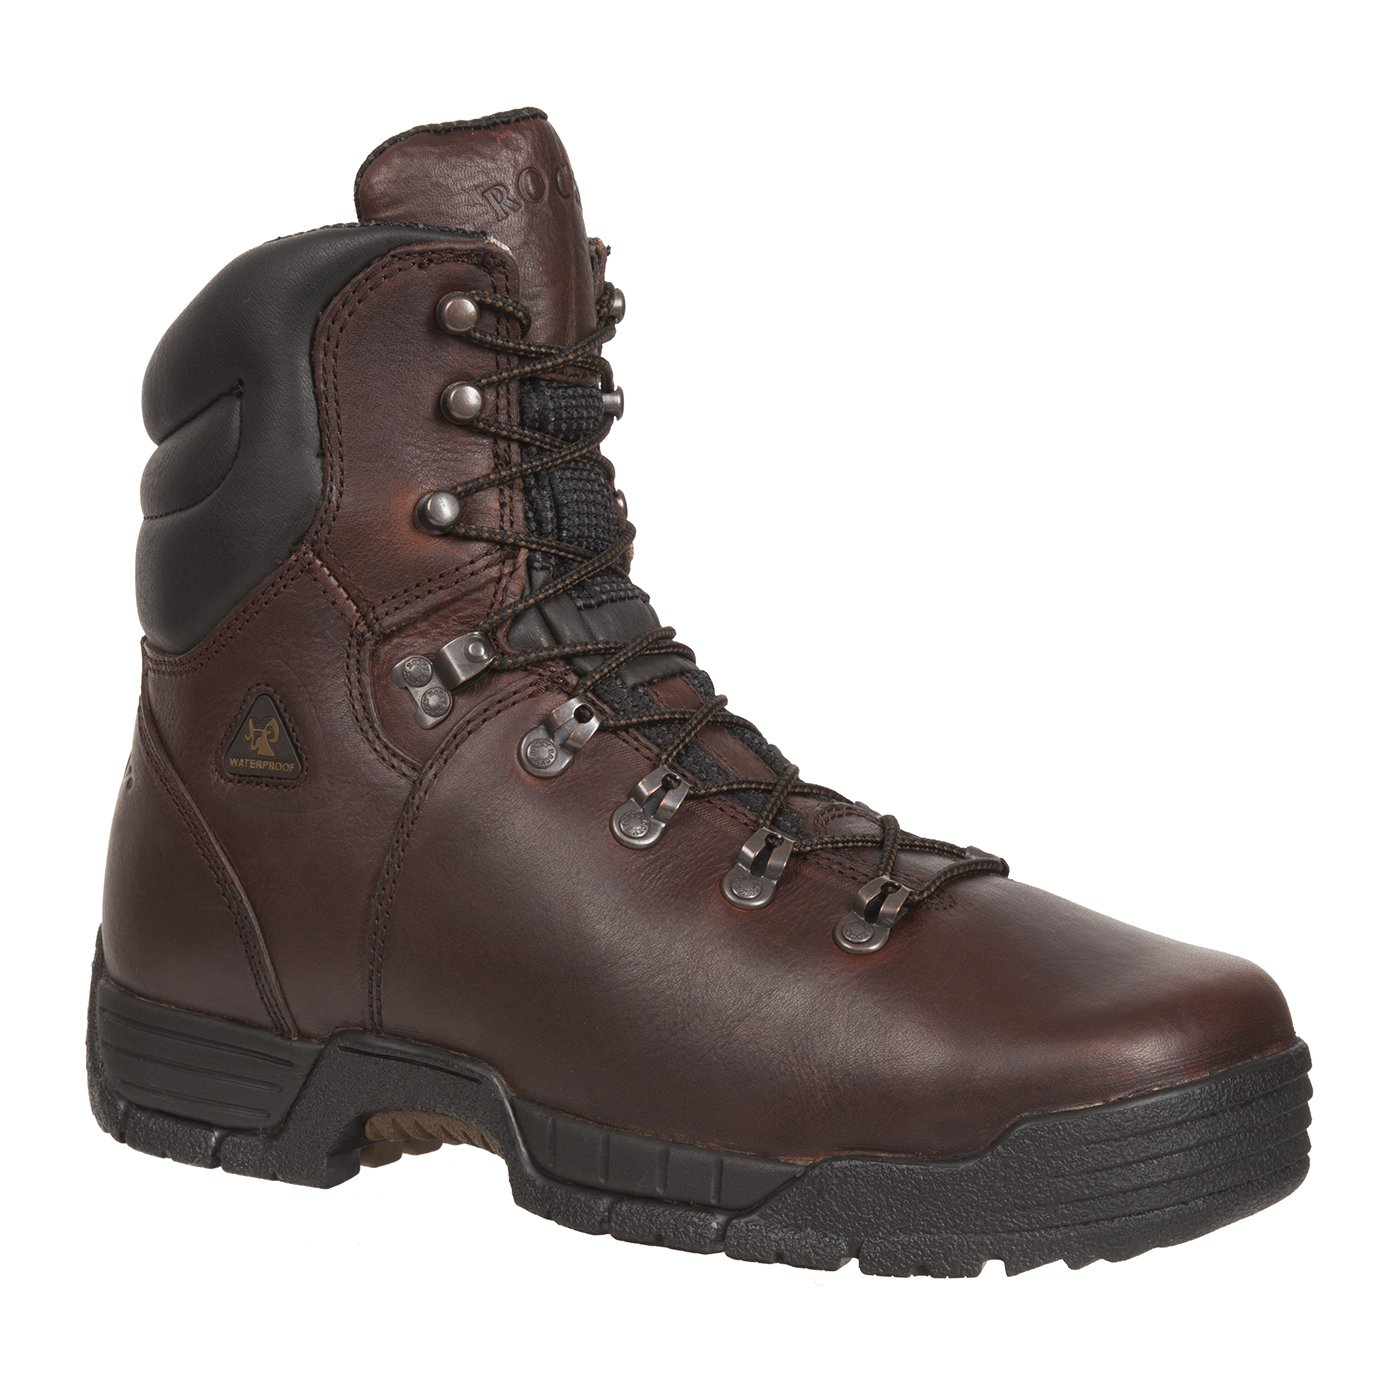 Rocky Mens 8 Mobilite Steel Toe Waterproof Work Boots-6115